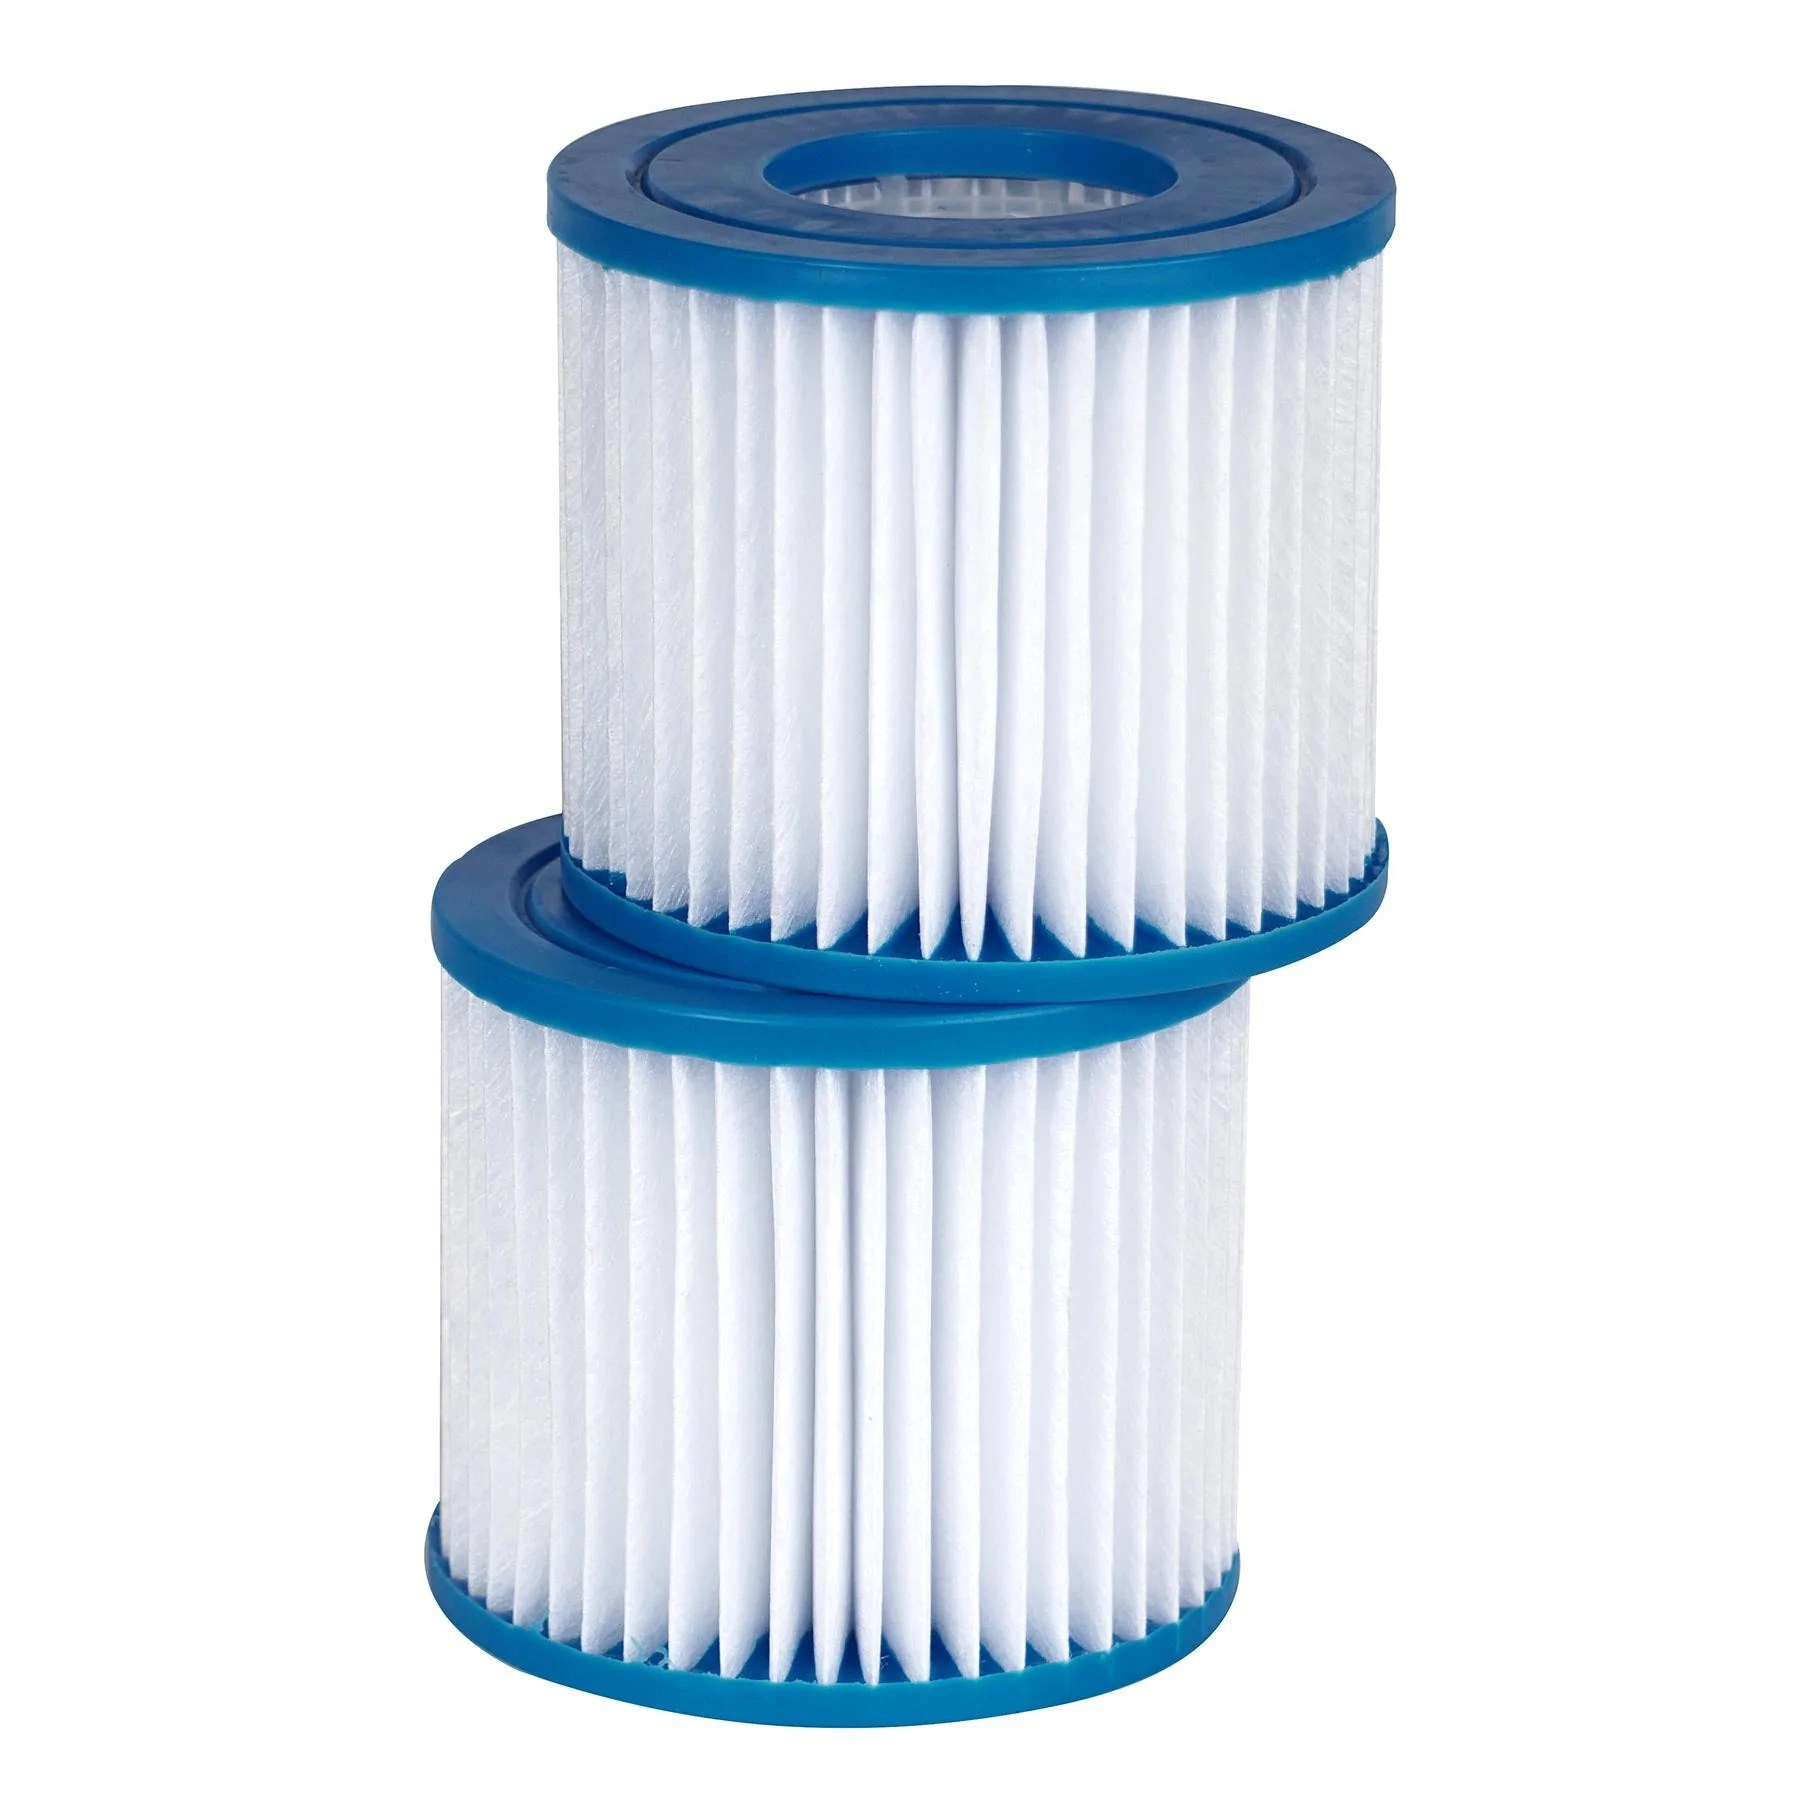 Jacuzzi Replacement Pool Filter Cartridge Replaces Unicel C 4313 Pleatco Pbw4pair Twin Pack Pool